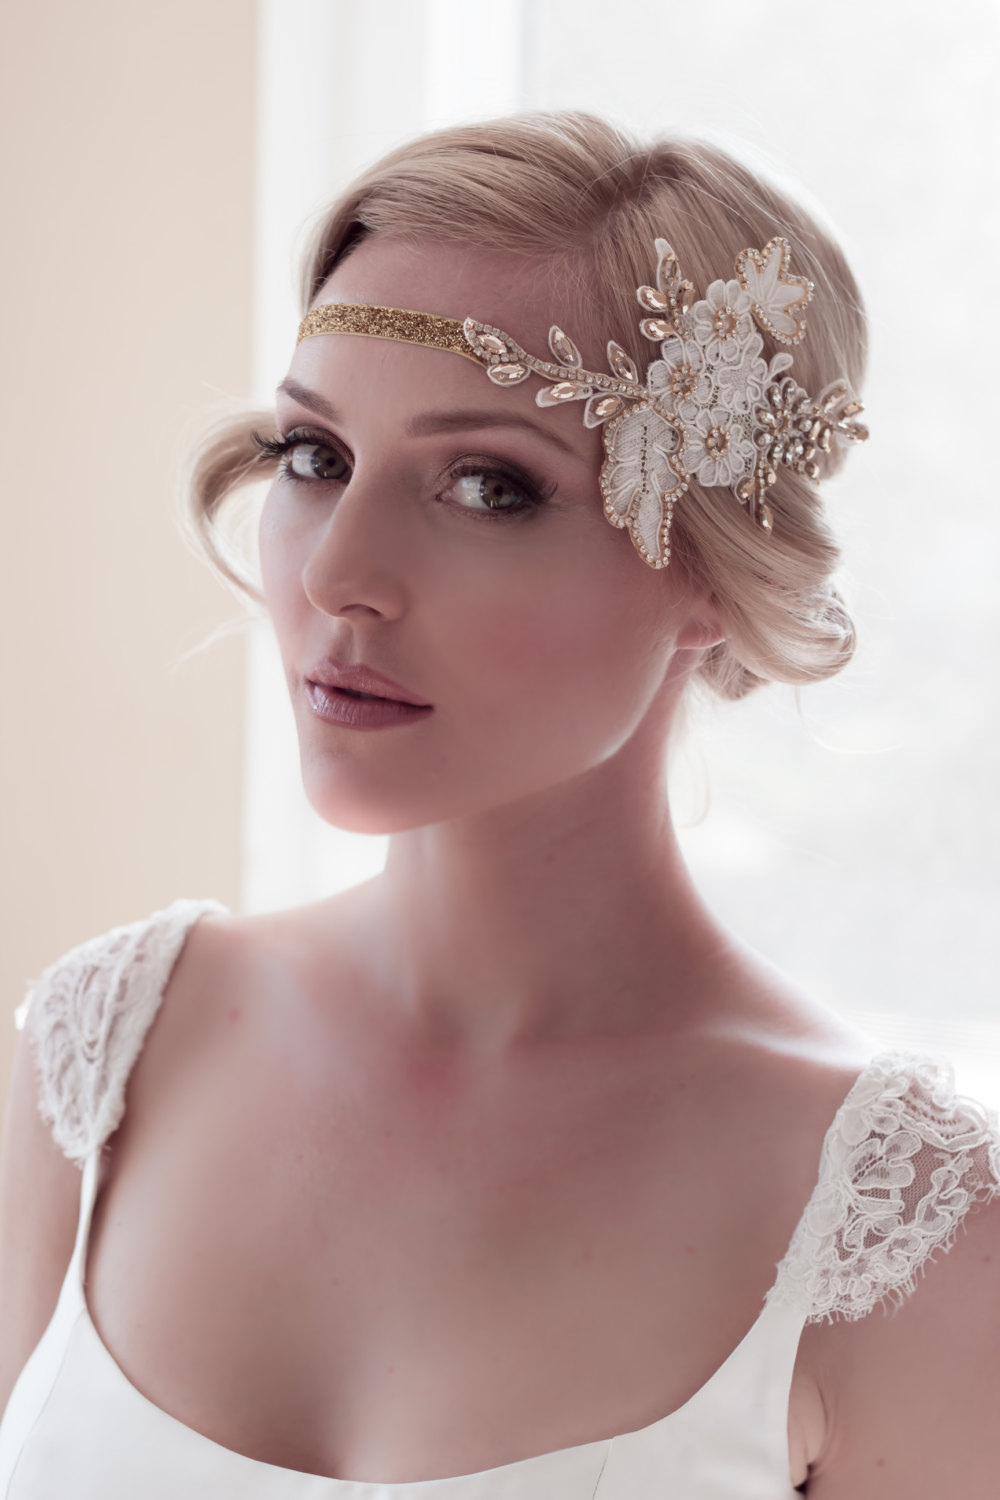 c6cd7346c33e9 This headpiece does not need to grace the hair style of a bride only. Try  using this look for a night out on the town!